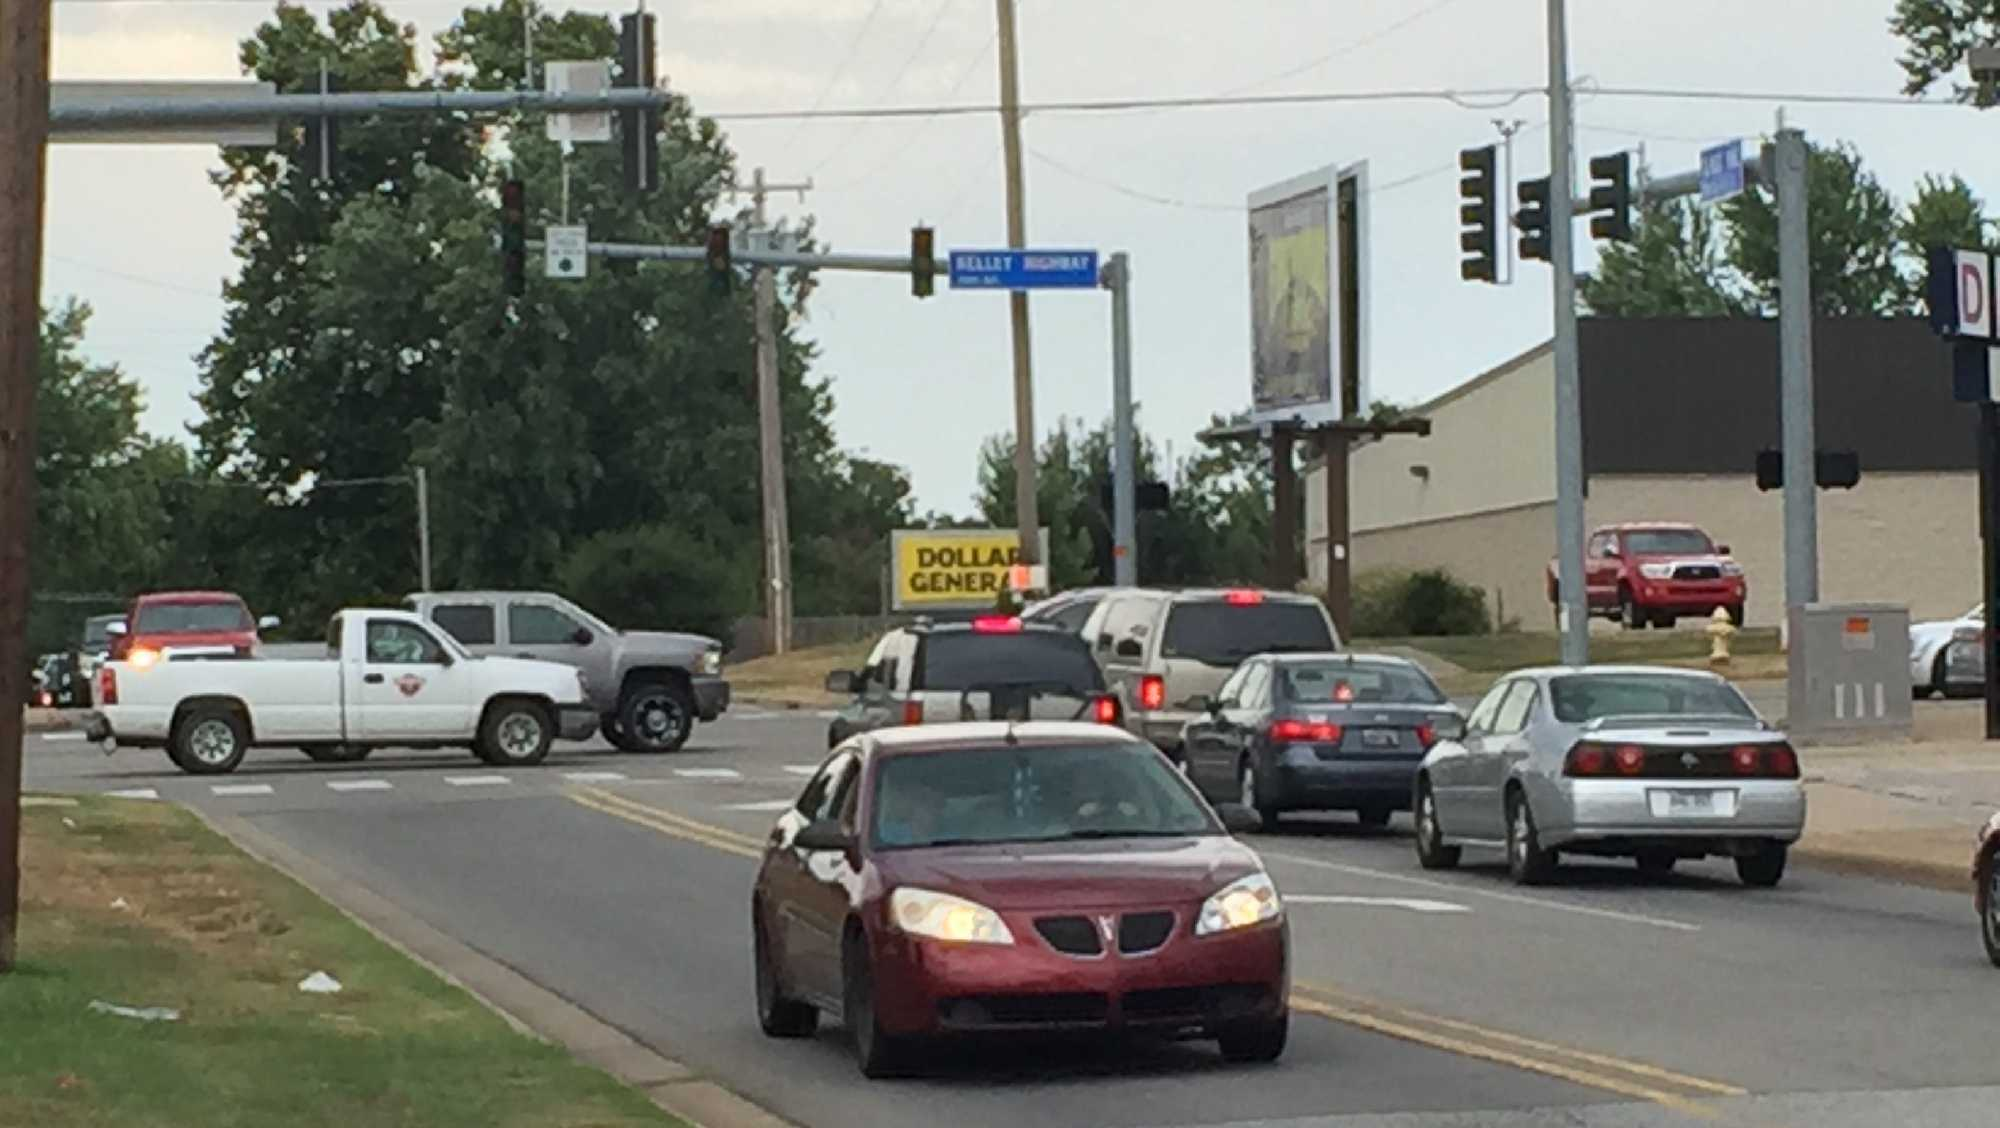 The traffic light at Kelley Highway and N. Albert Pike Ave. in Ft. Smith went out Friday afternoon.